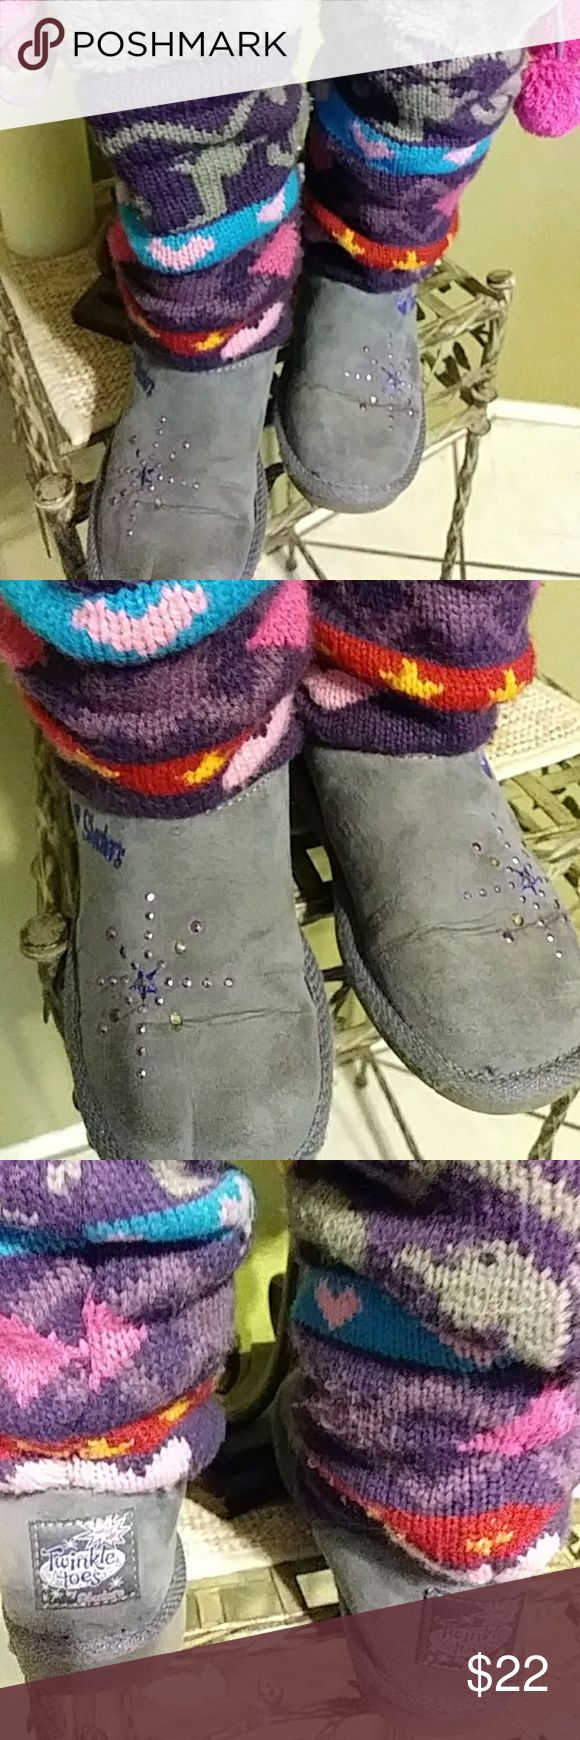 Girls Skecher boots Great for cold winter to come nice condition an the stars sparkle Skechers Shoes Boots